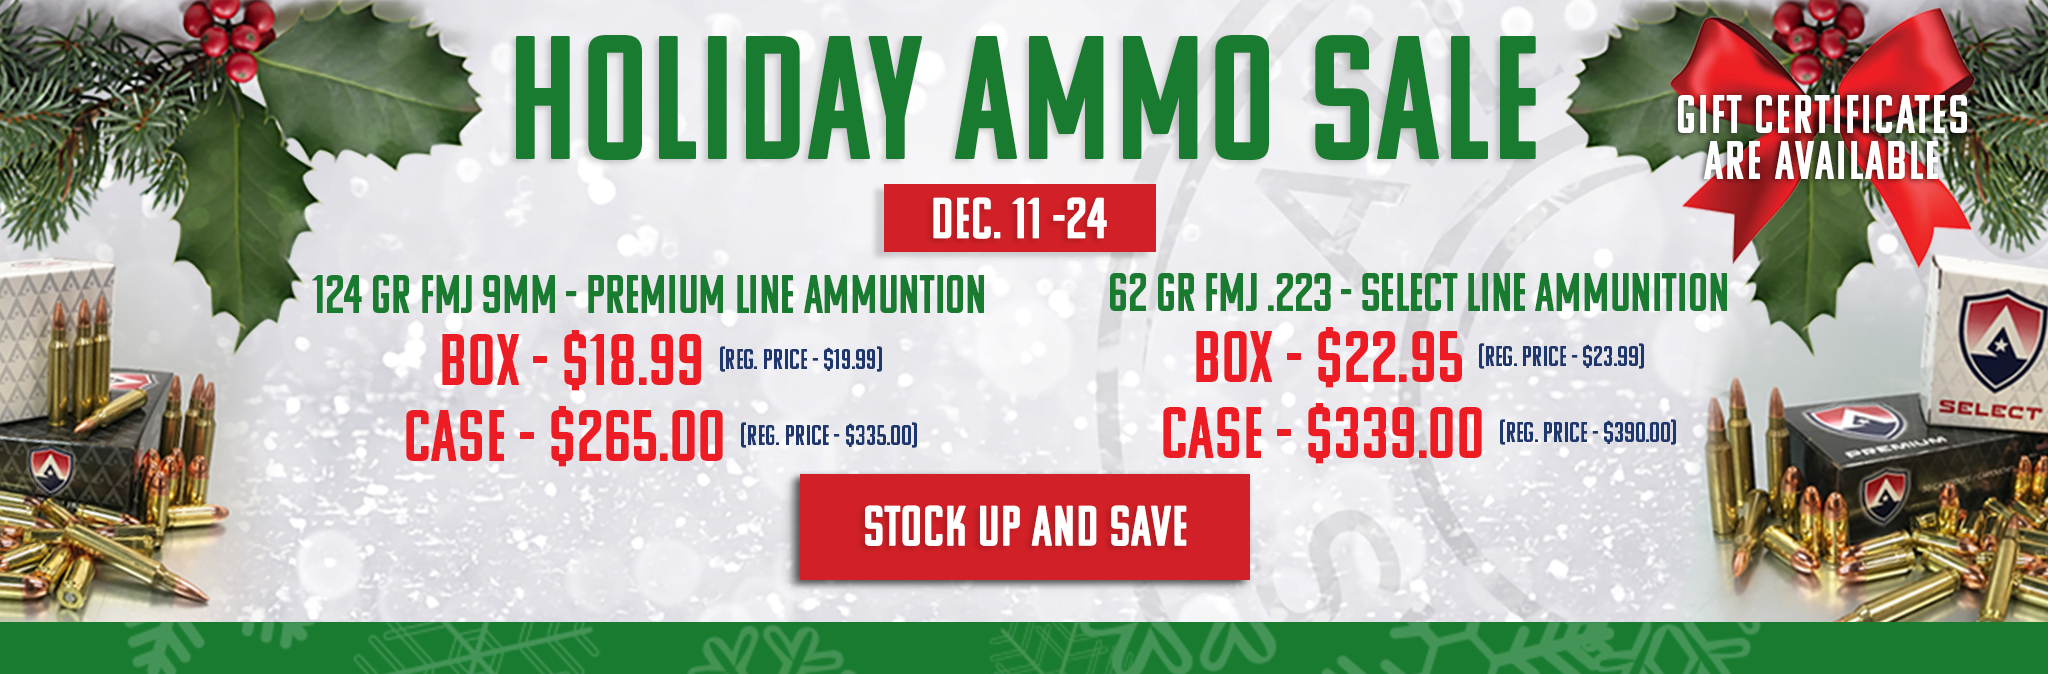 Holiday Ammo Sale - Dec. 11th through the 24th